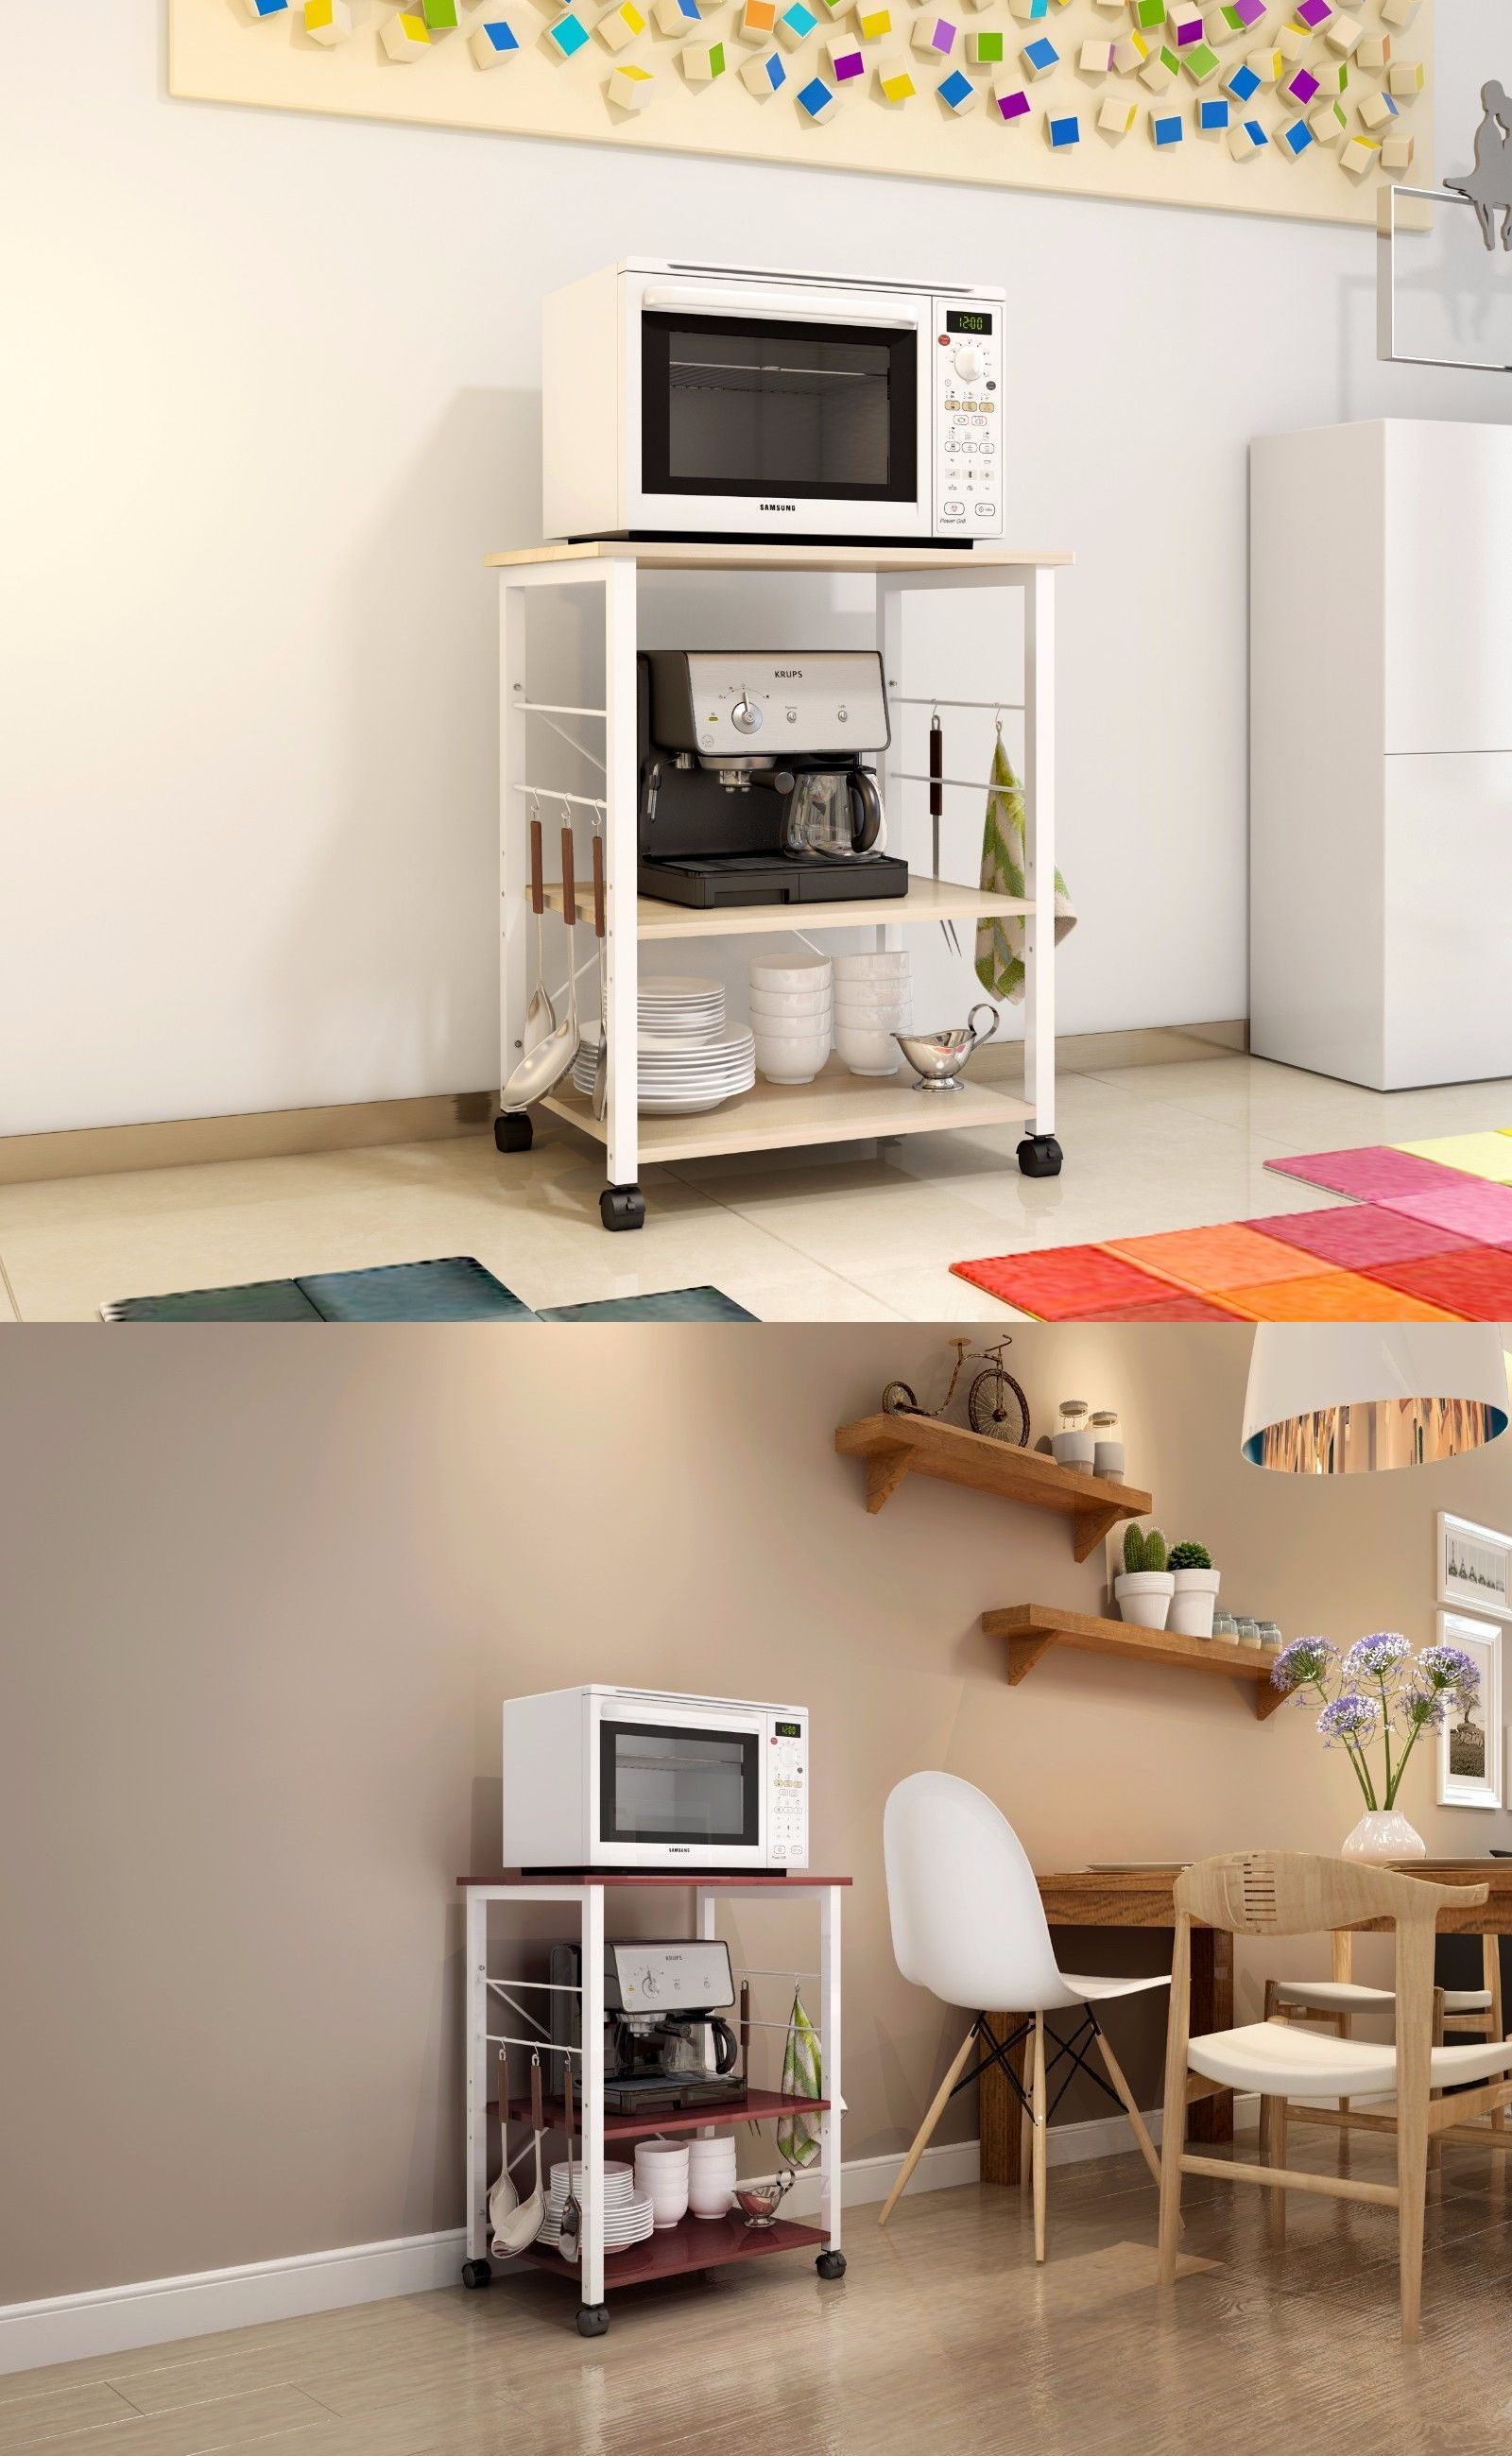 Details About 3 Tier 24 Microwave Stand Storage Kitchen Baker S